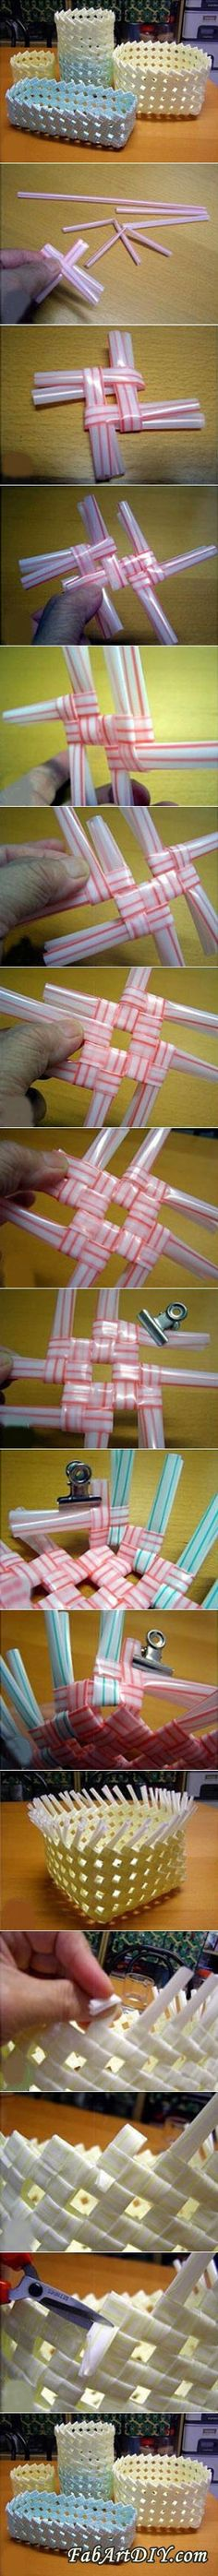 How to DIY Drinking Straw Basket | www.FabArtDIY.com LIKE Us on Facebook ==> https://www.facebook.com/FabArtDIY